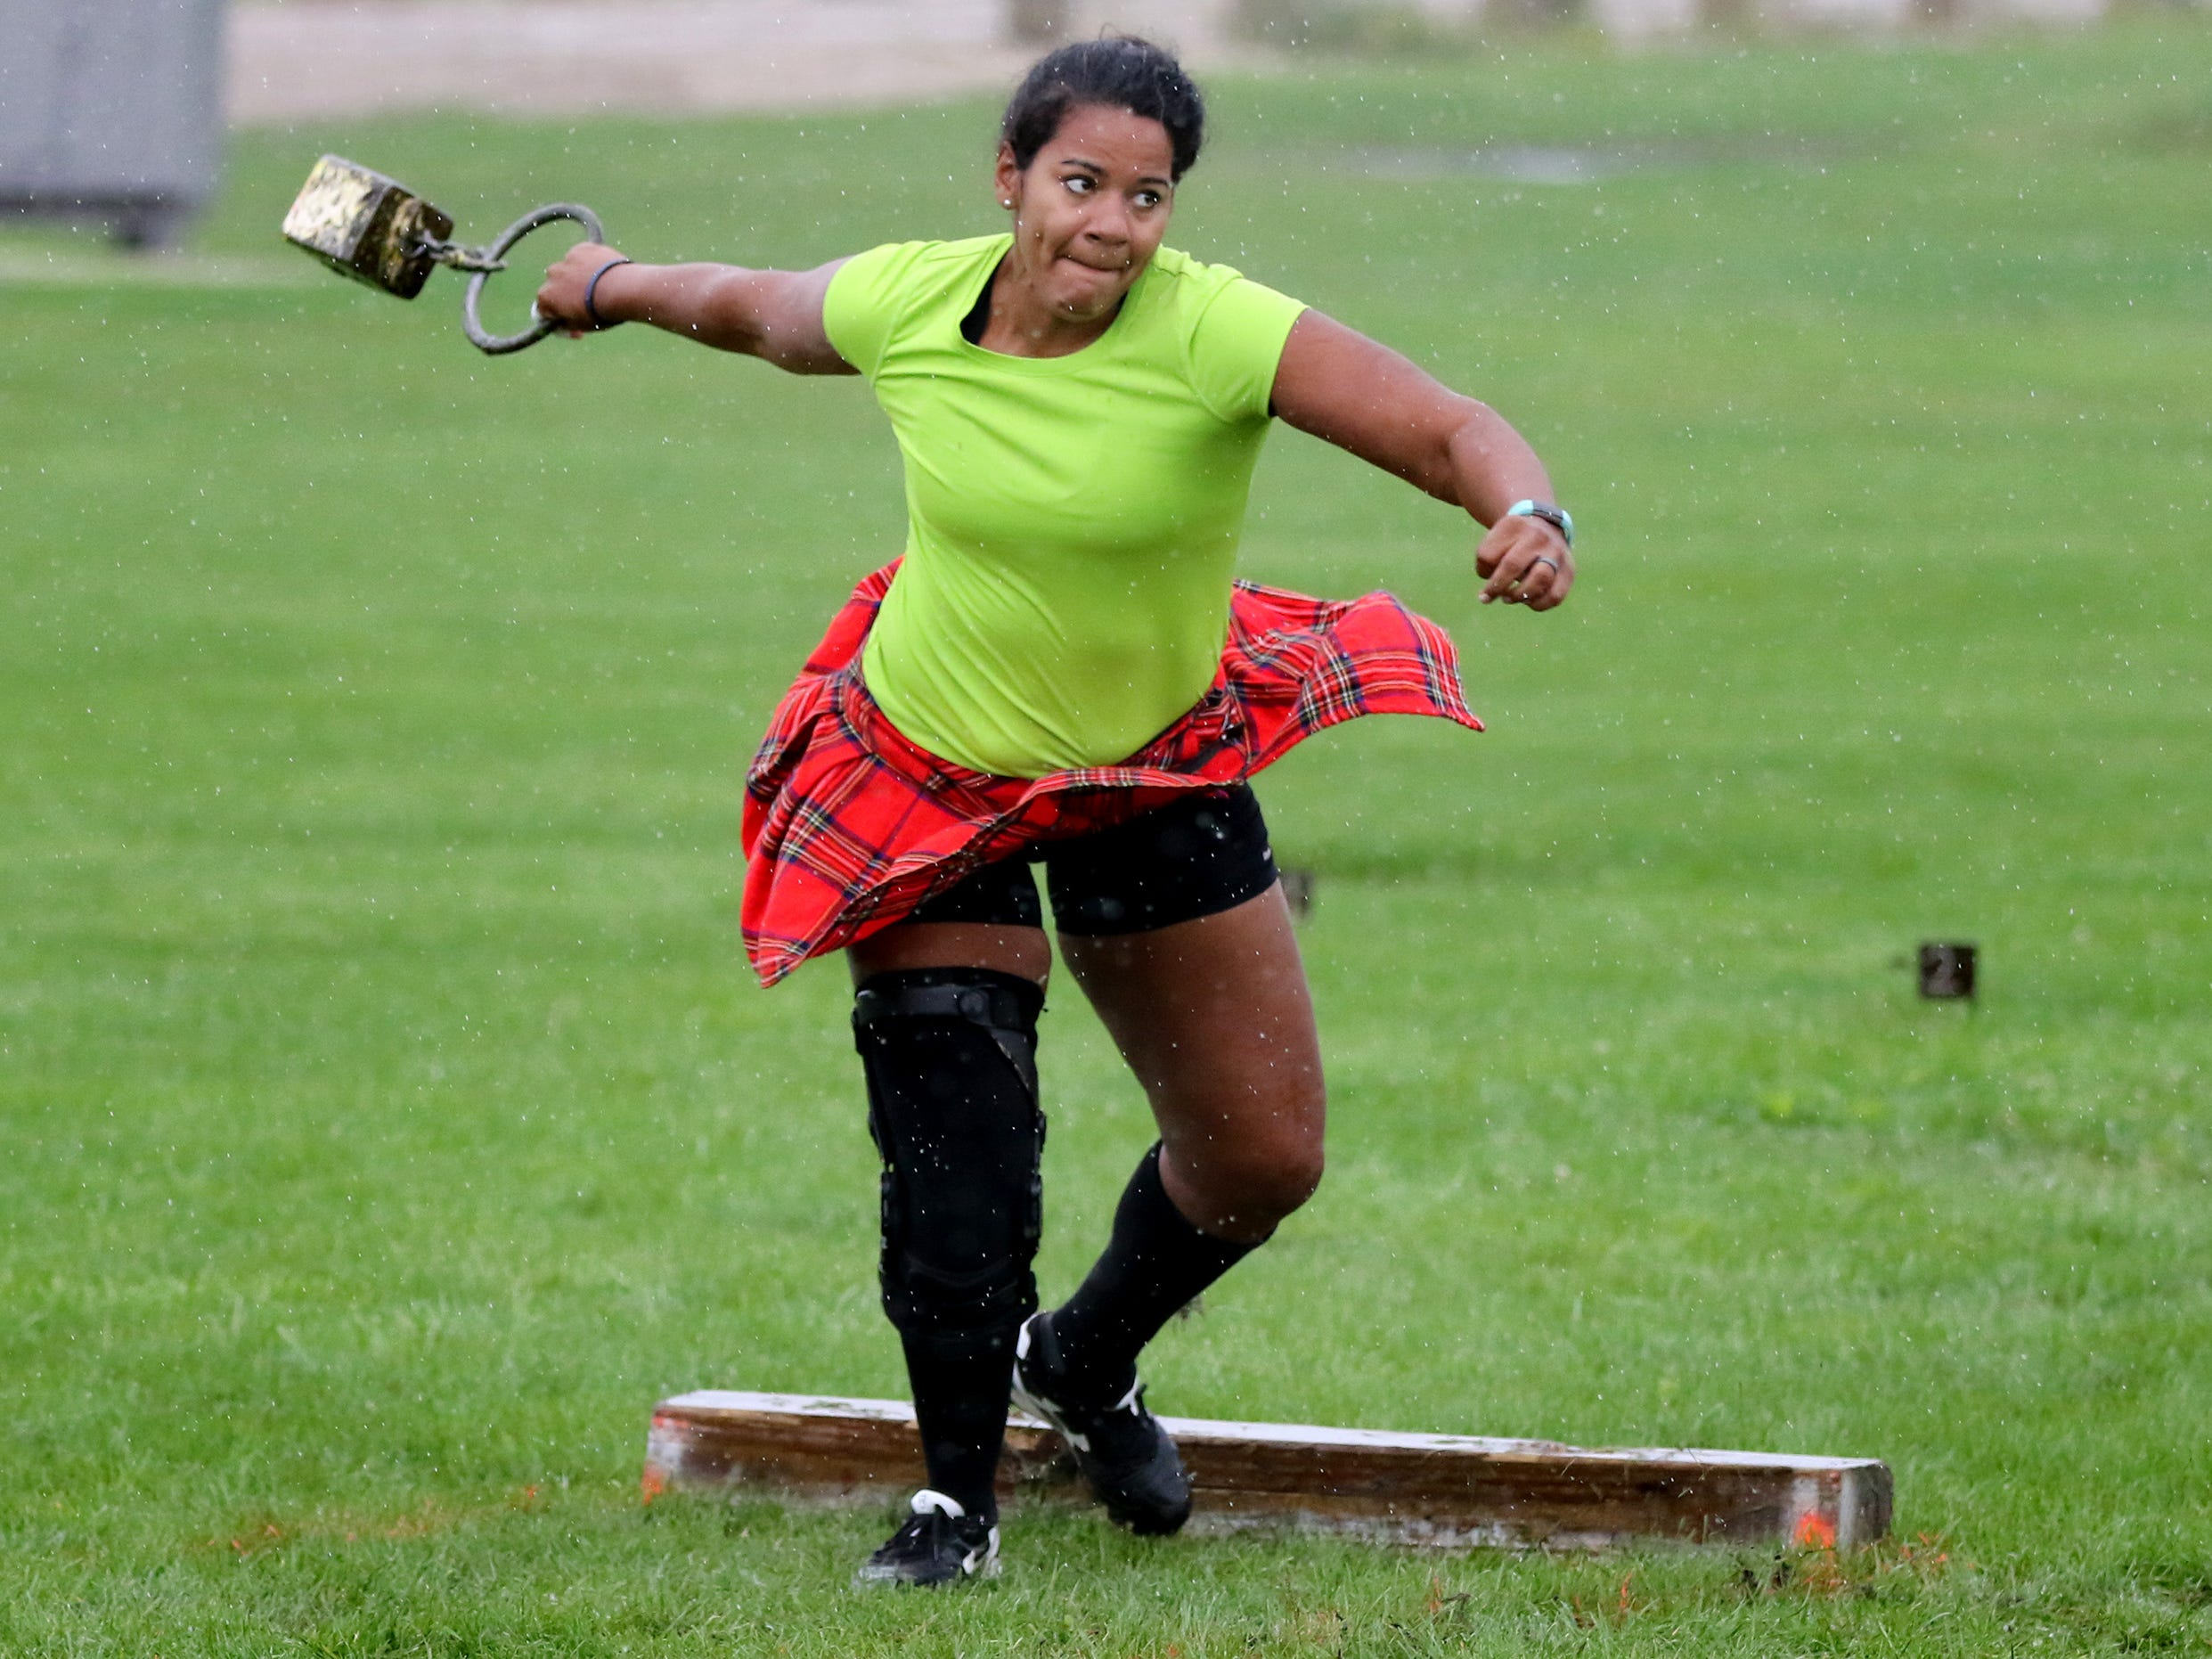 Elissa Hapner of Aurora, Illinois, spins for a throw in the heavyweight division of the Haggis Hurl Sept. 1 at the Wisconsin Highland Games on the Waukesha County Expo Center grounds.